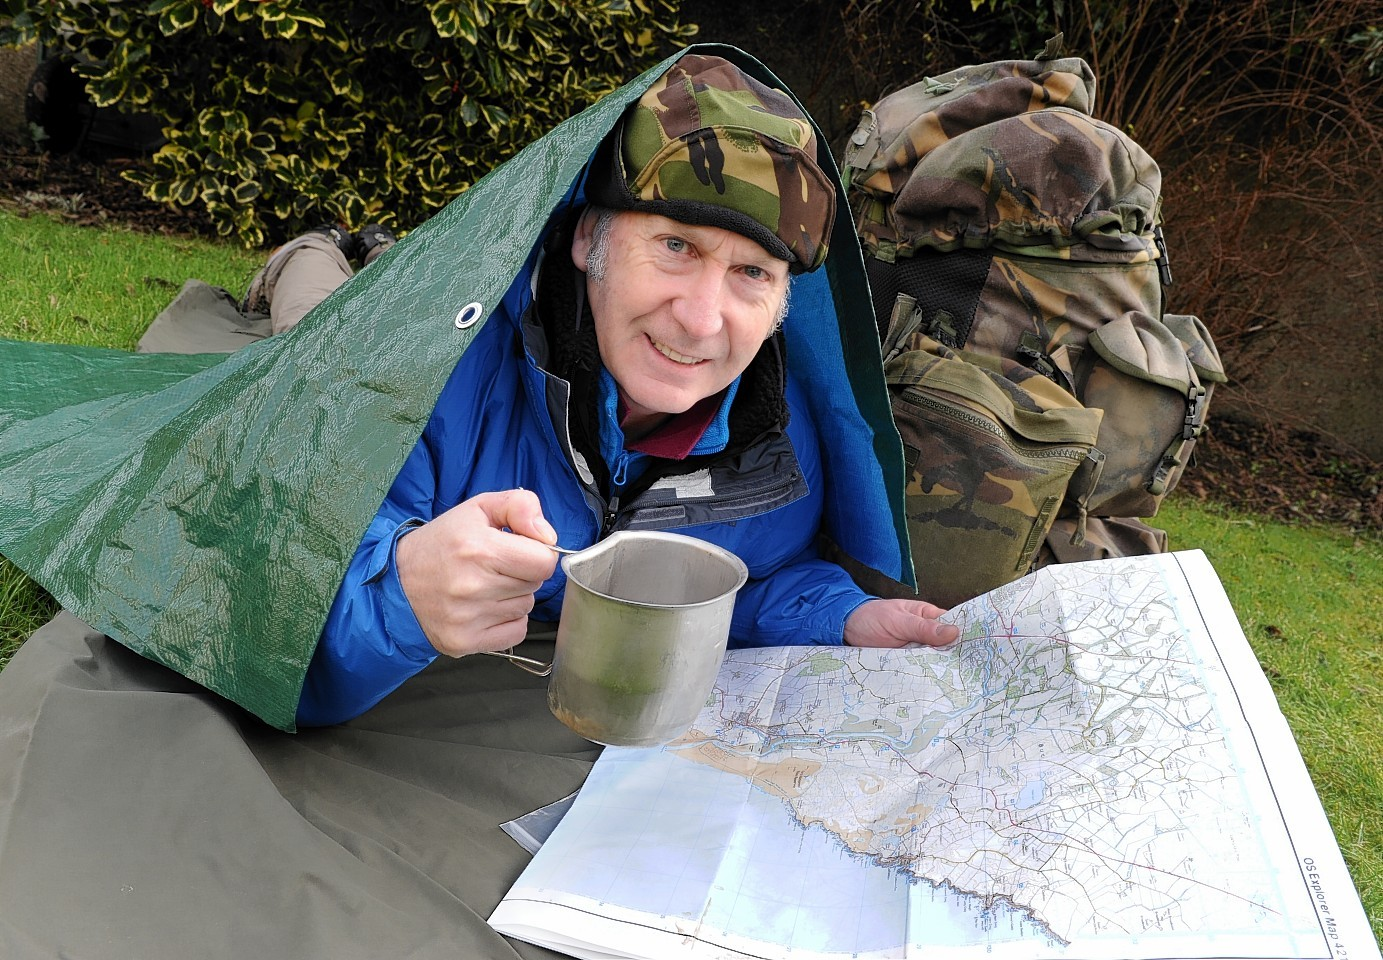 Lionel Holmes is camping out to raise funds for CHAS